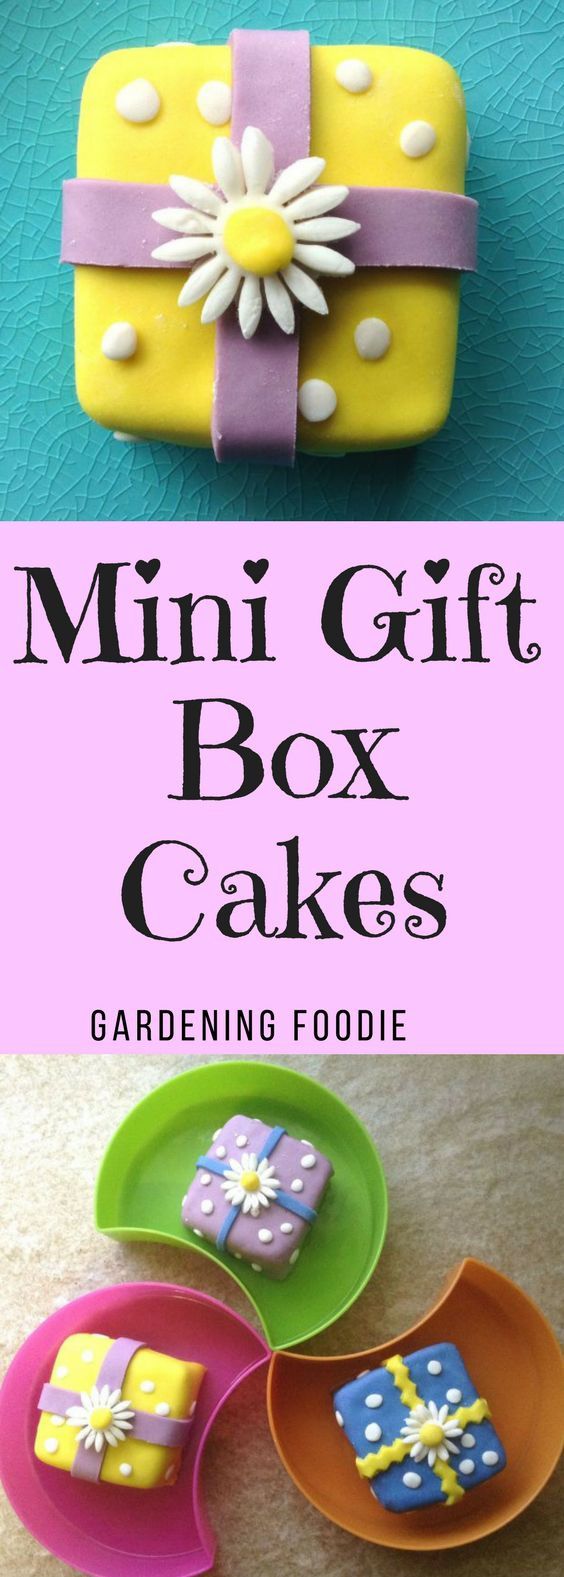 Aren't novelty cakes the cutest, and these Mini Gift Box Cakes make adorable individual dessert treats. Covered in rolled fondant these little desserts are sure to make an impression.